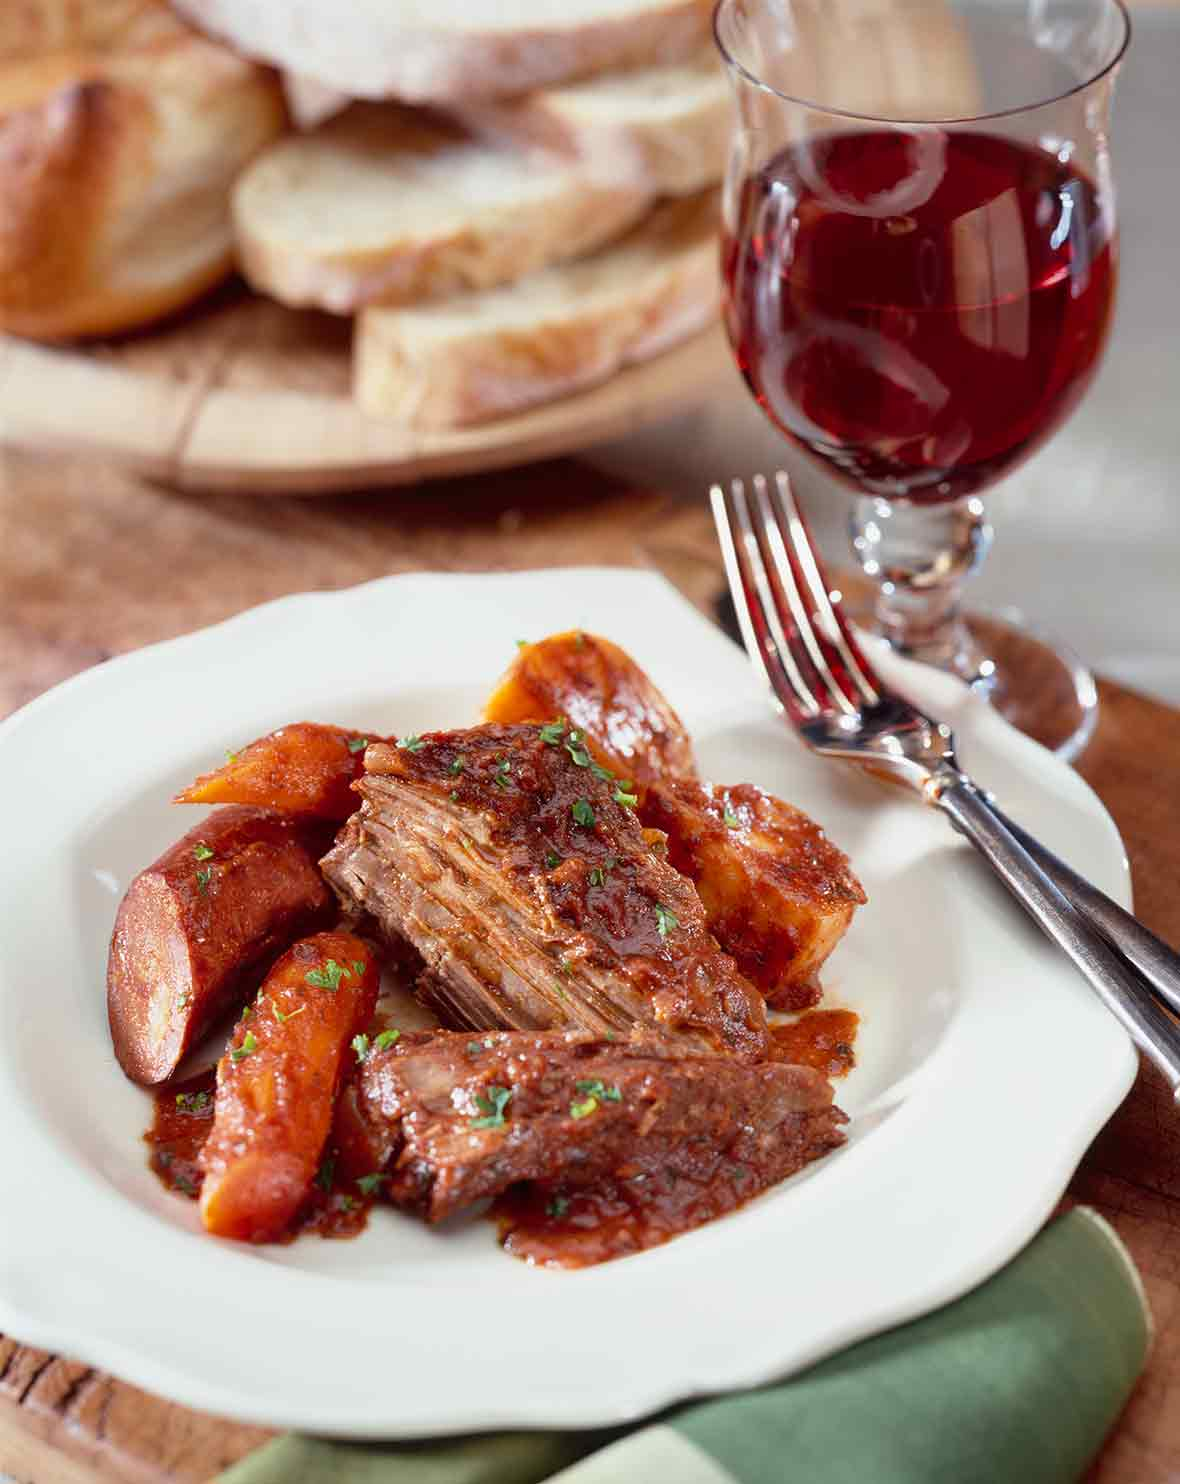 Azorean food: white bowl with carne assada--braised beef with carrots, potatoes, and Portuguese sausage, chouriço